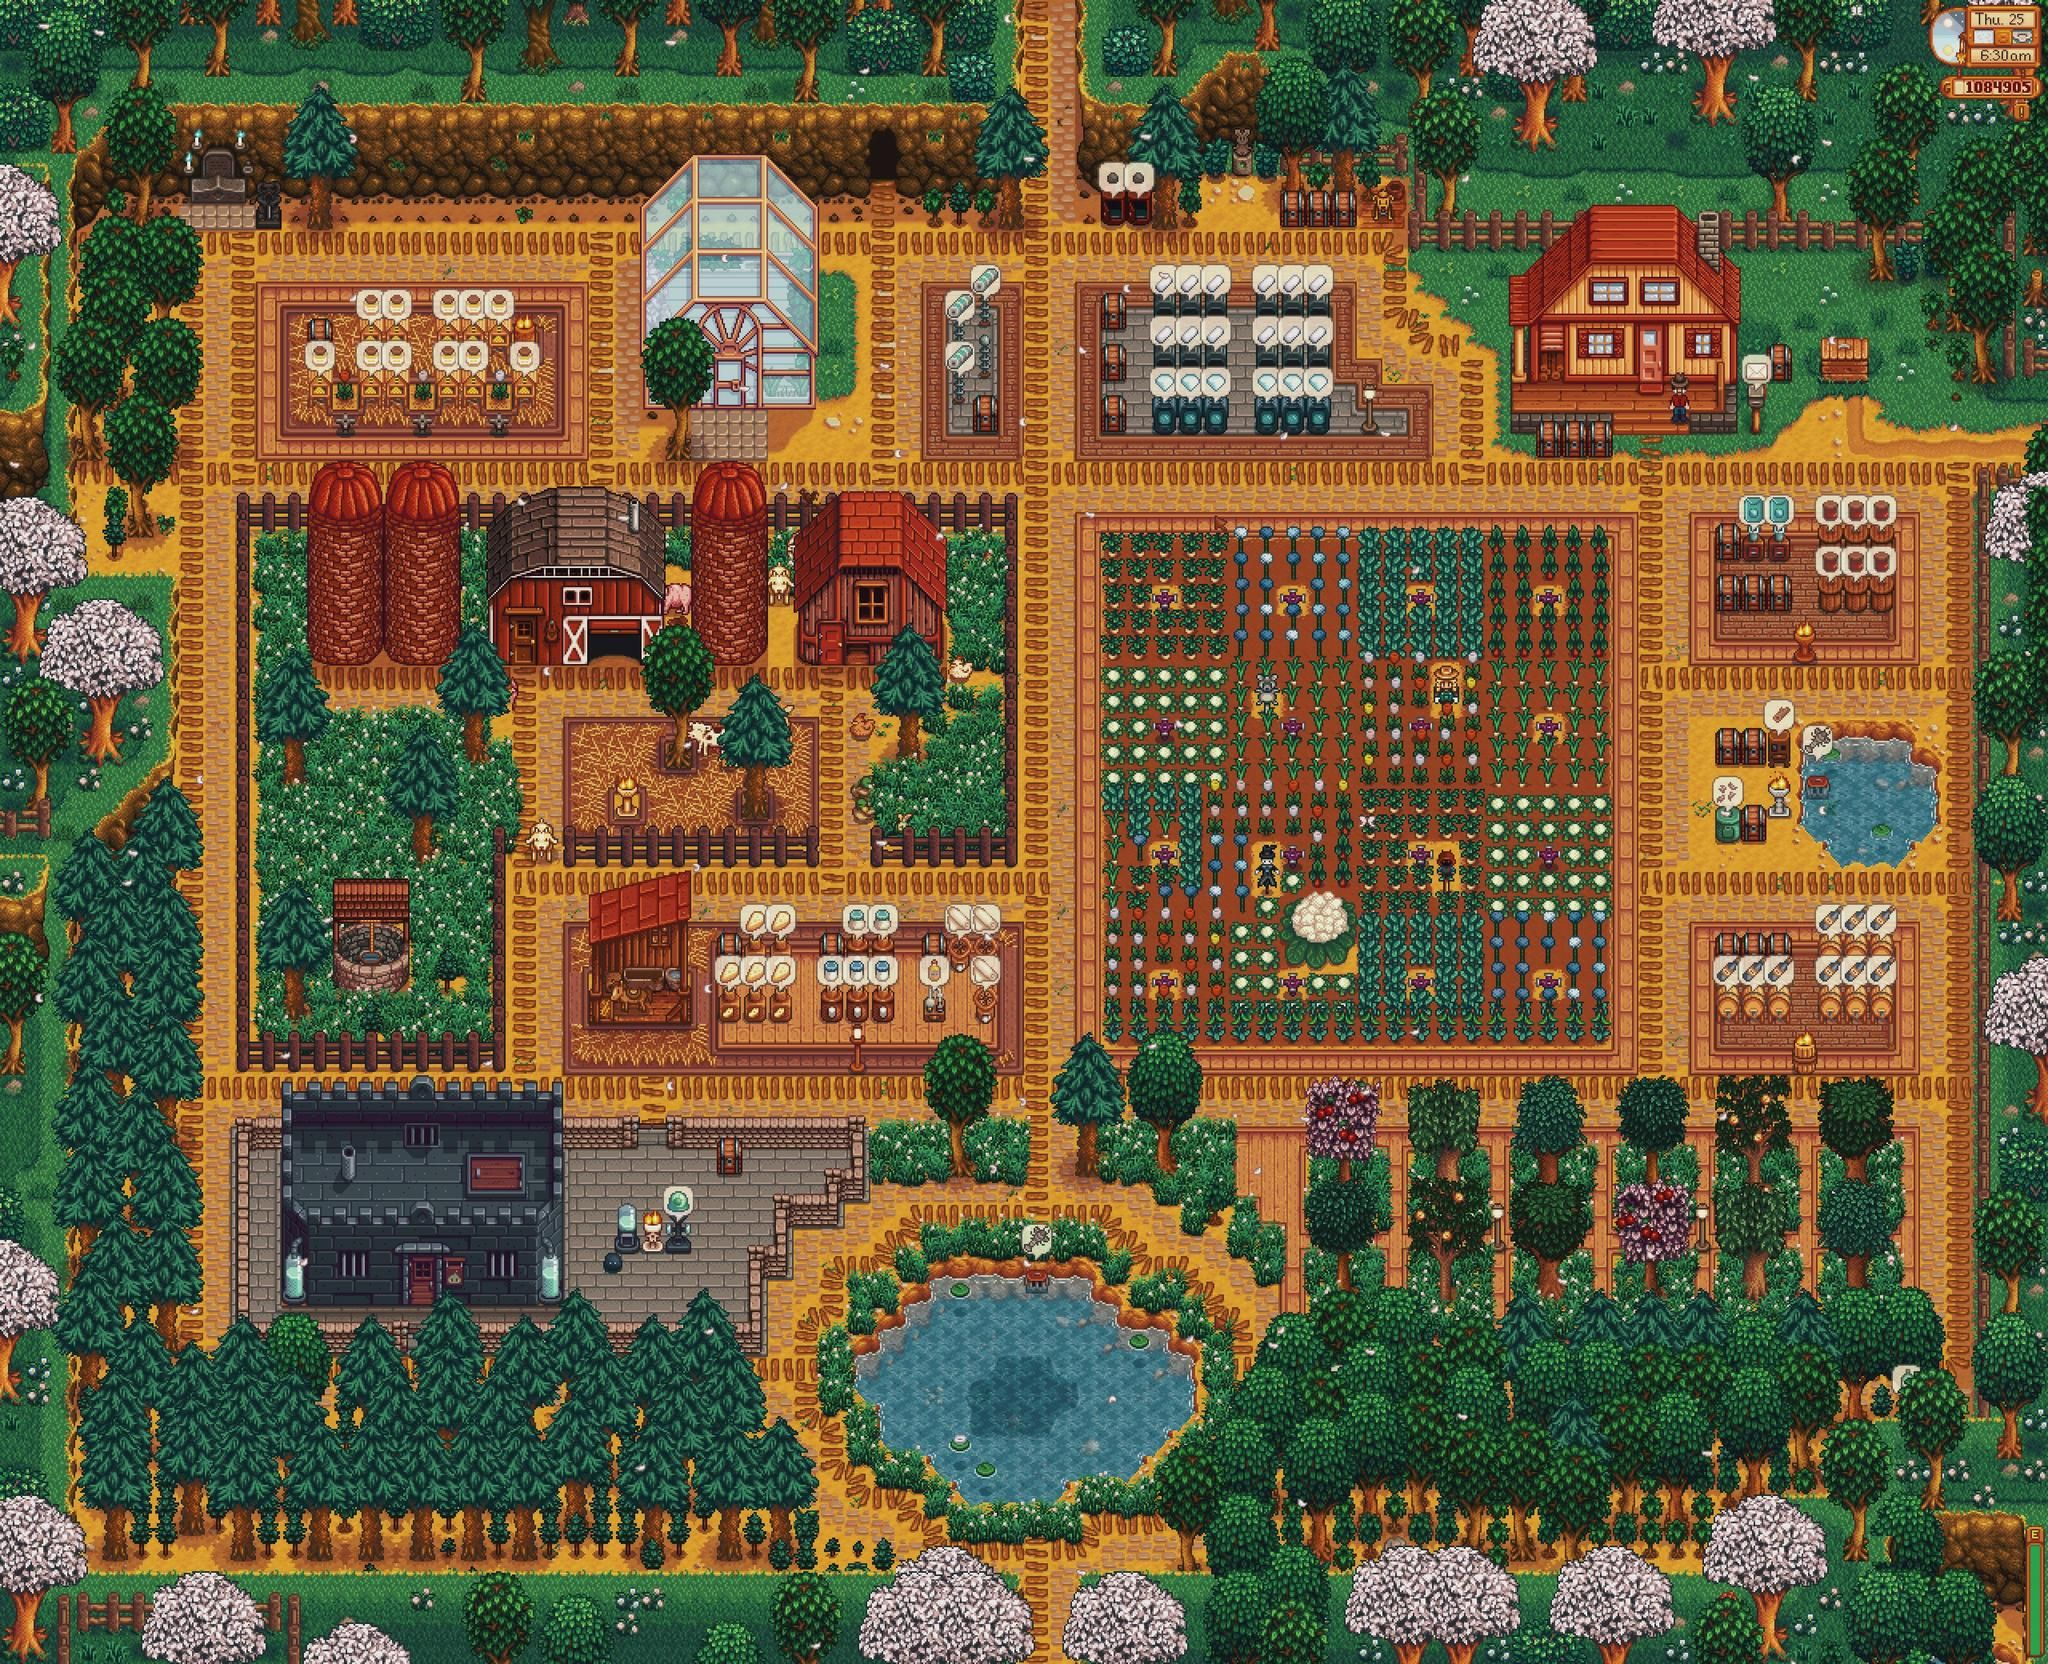 I Mean That Farm Organization Though I Want My Stardew Valley